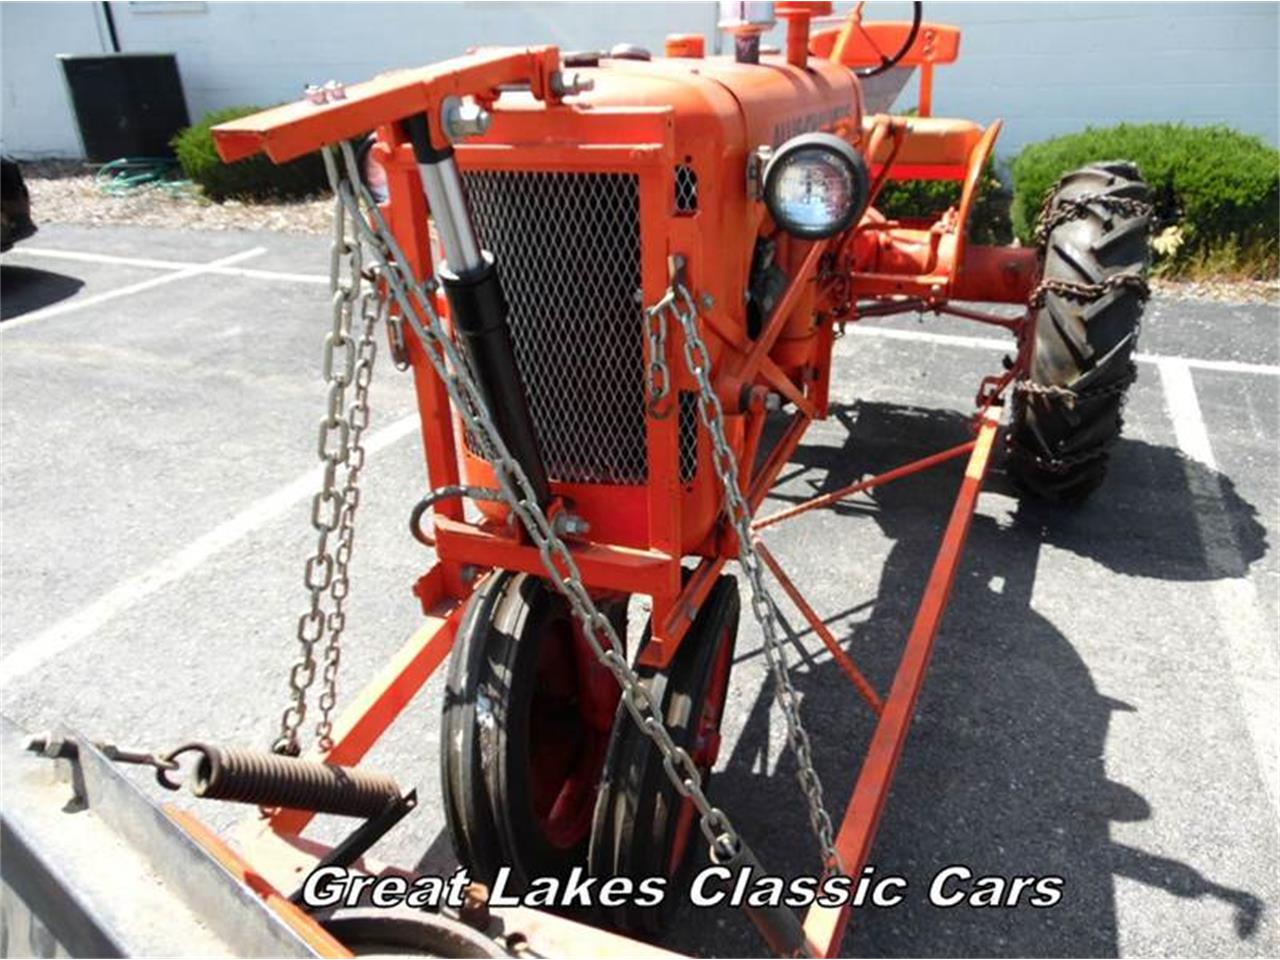 Large Picture of 1941 Allis Chalmers D located in Hilton New York - $2,495.00 - HTLI